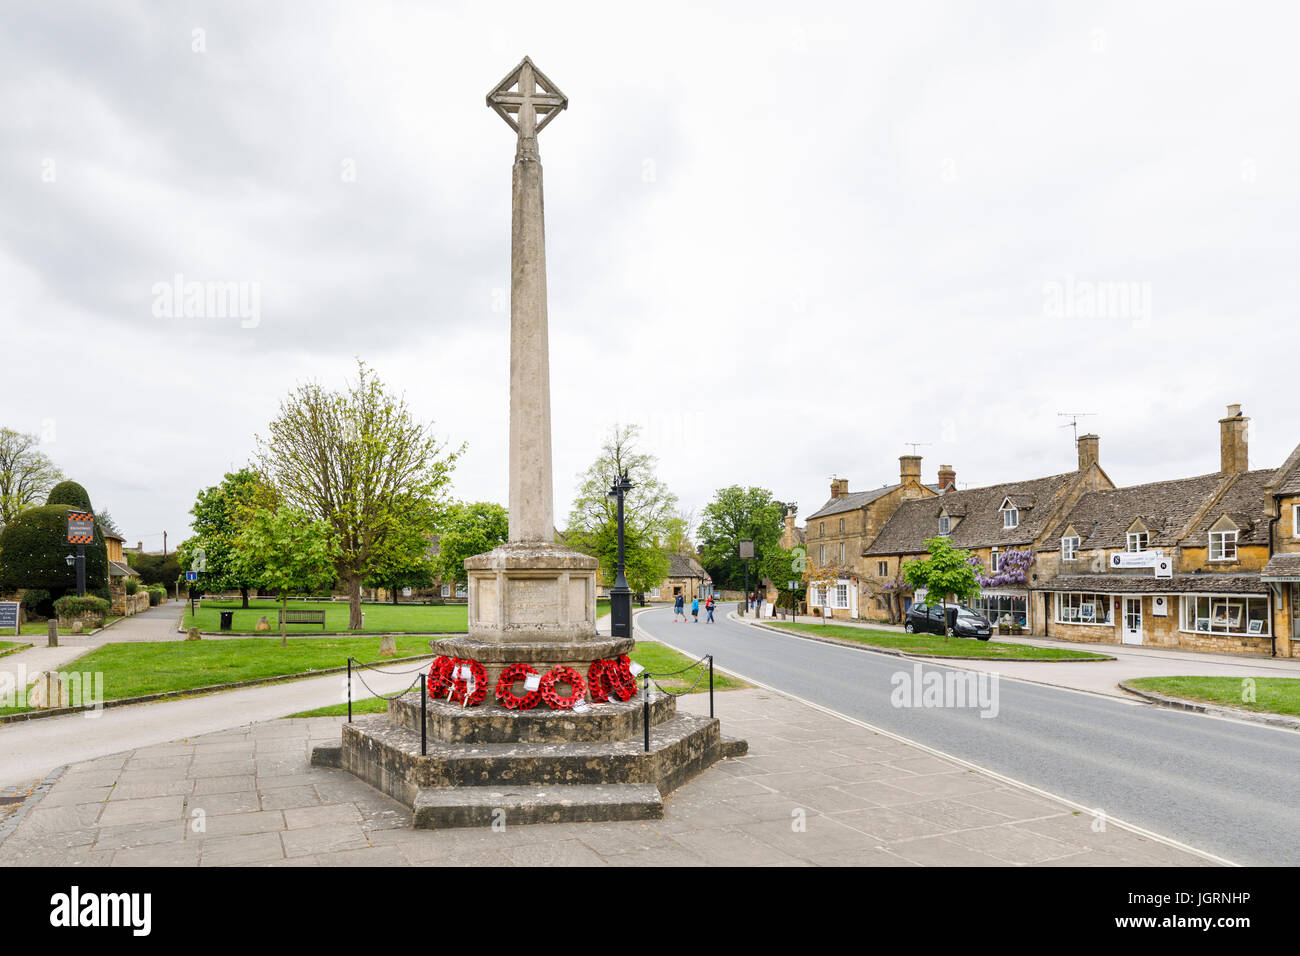 Street scene: War memorial with red poppy wreaths, High Street, Broadway, Worcestershire, a beautiful village in - Stock Image